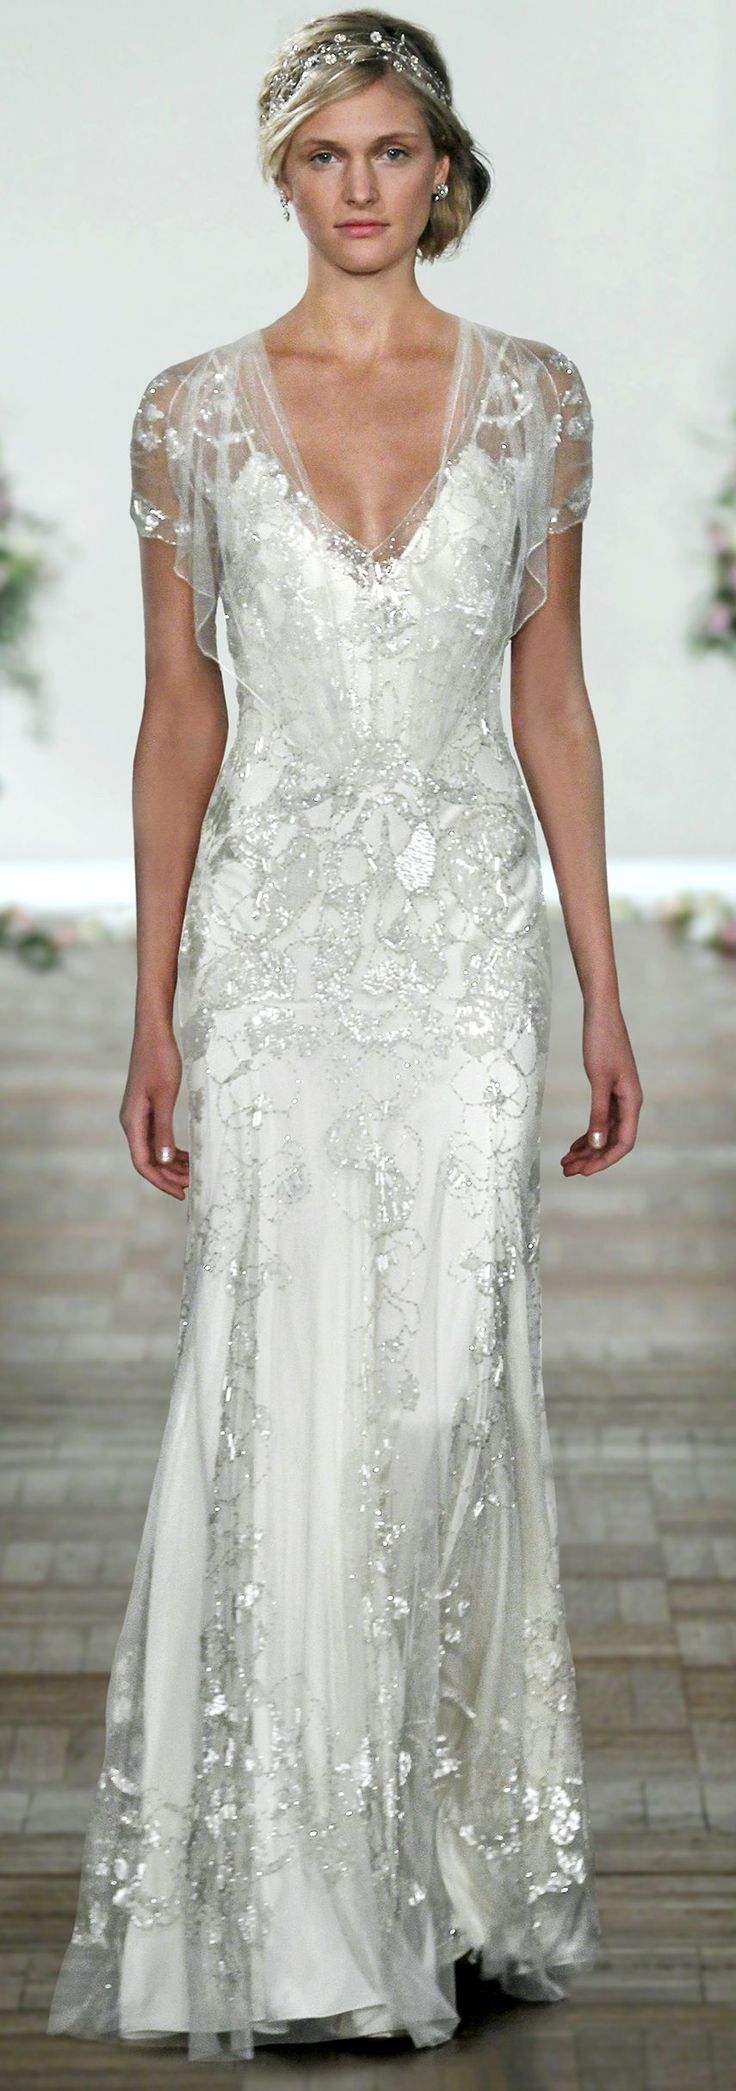 the sparkle & lace overlay on this dress is STUNNING! Jenny Packham Bridal | Spring Summer 2013 (front)